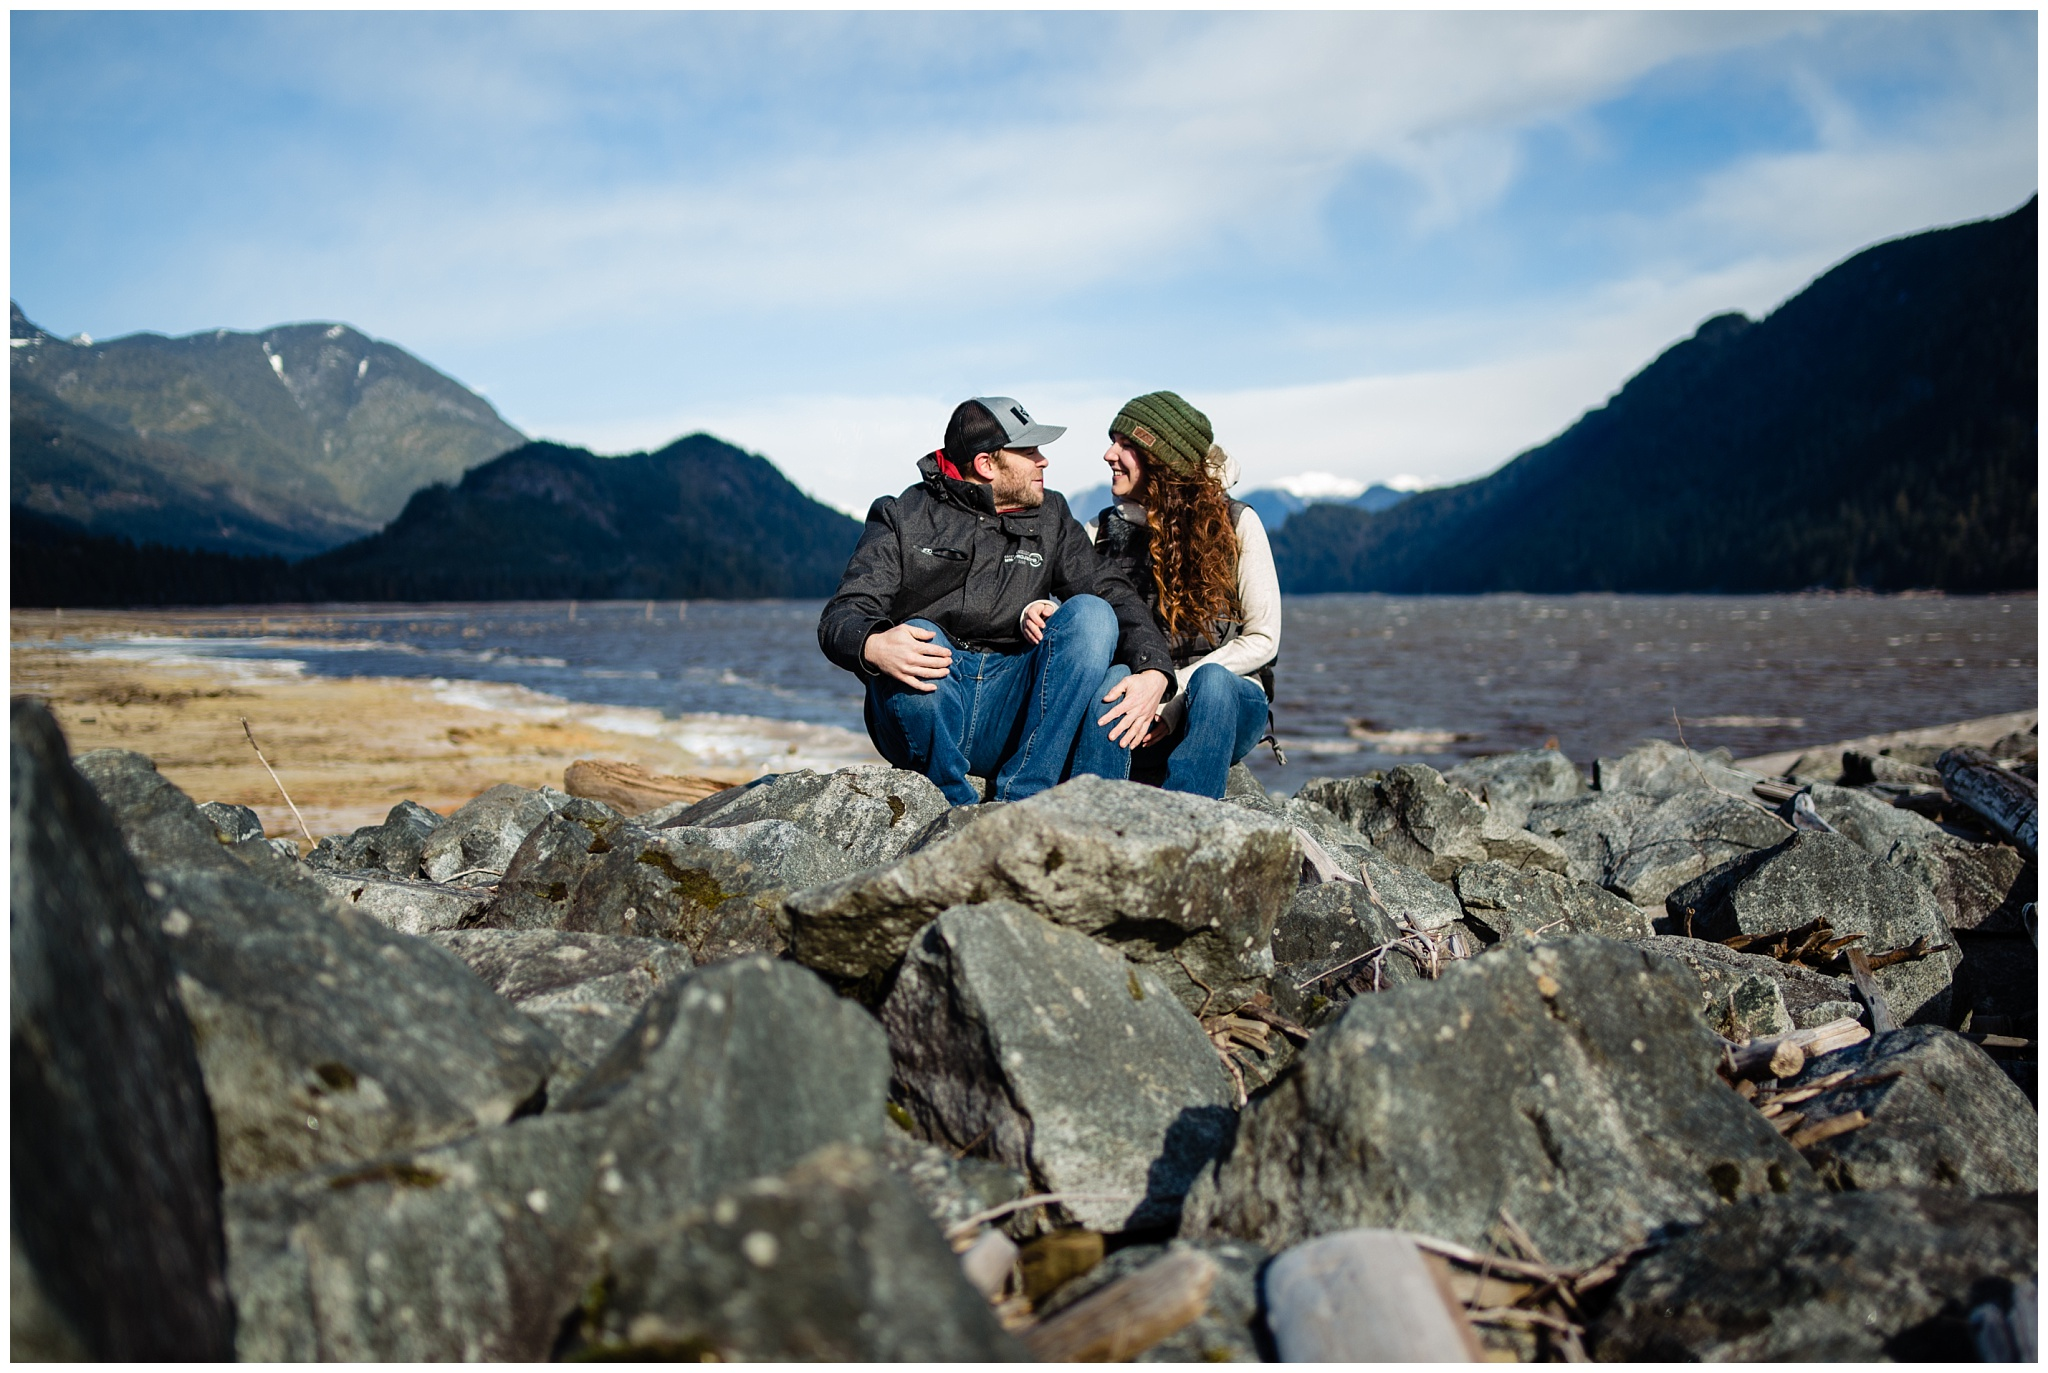 Stave Lake Adventure Engagement  Photographer Mission Fun Candid Natural Romantic Couple Poses_0002.jpg